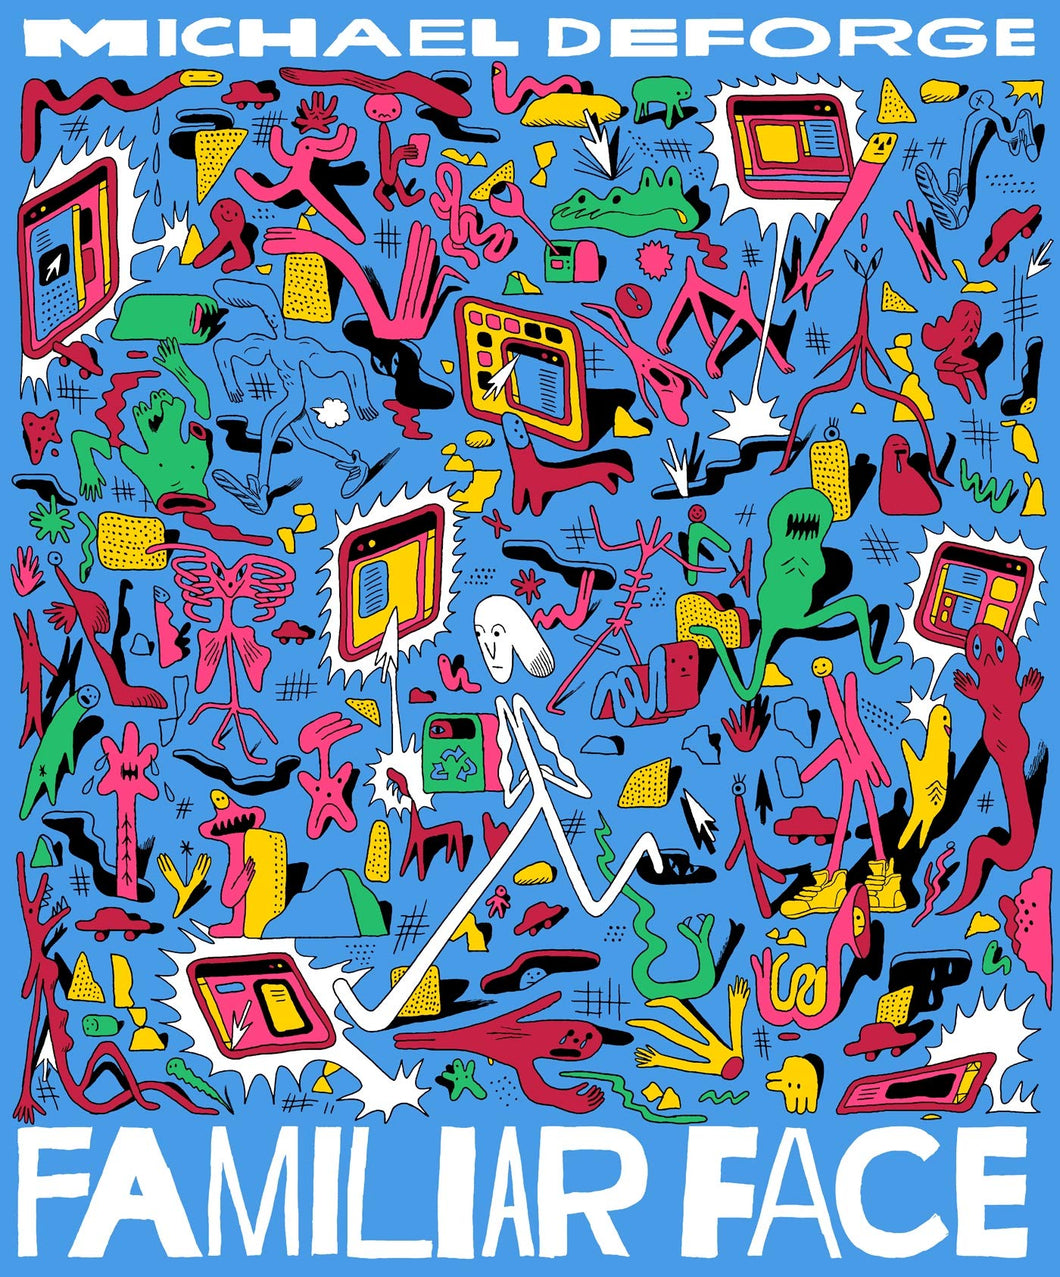 Familiar Face by Michael DeForge